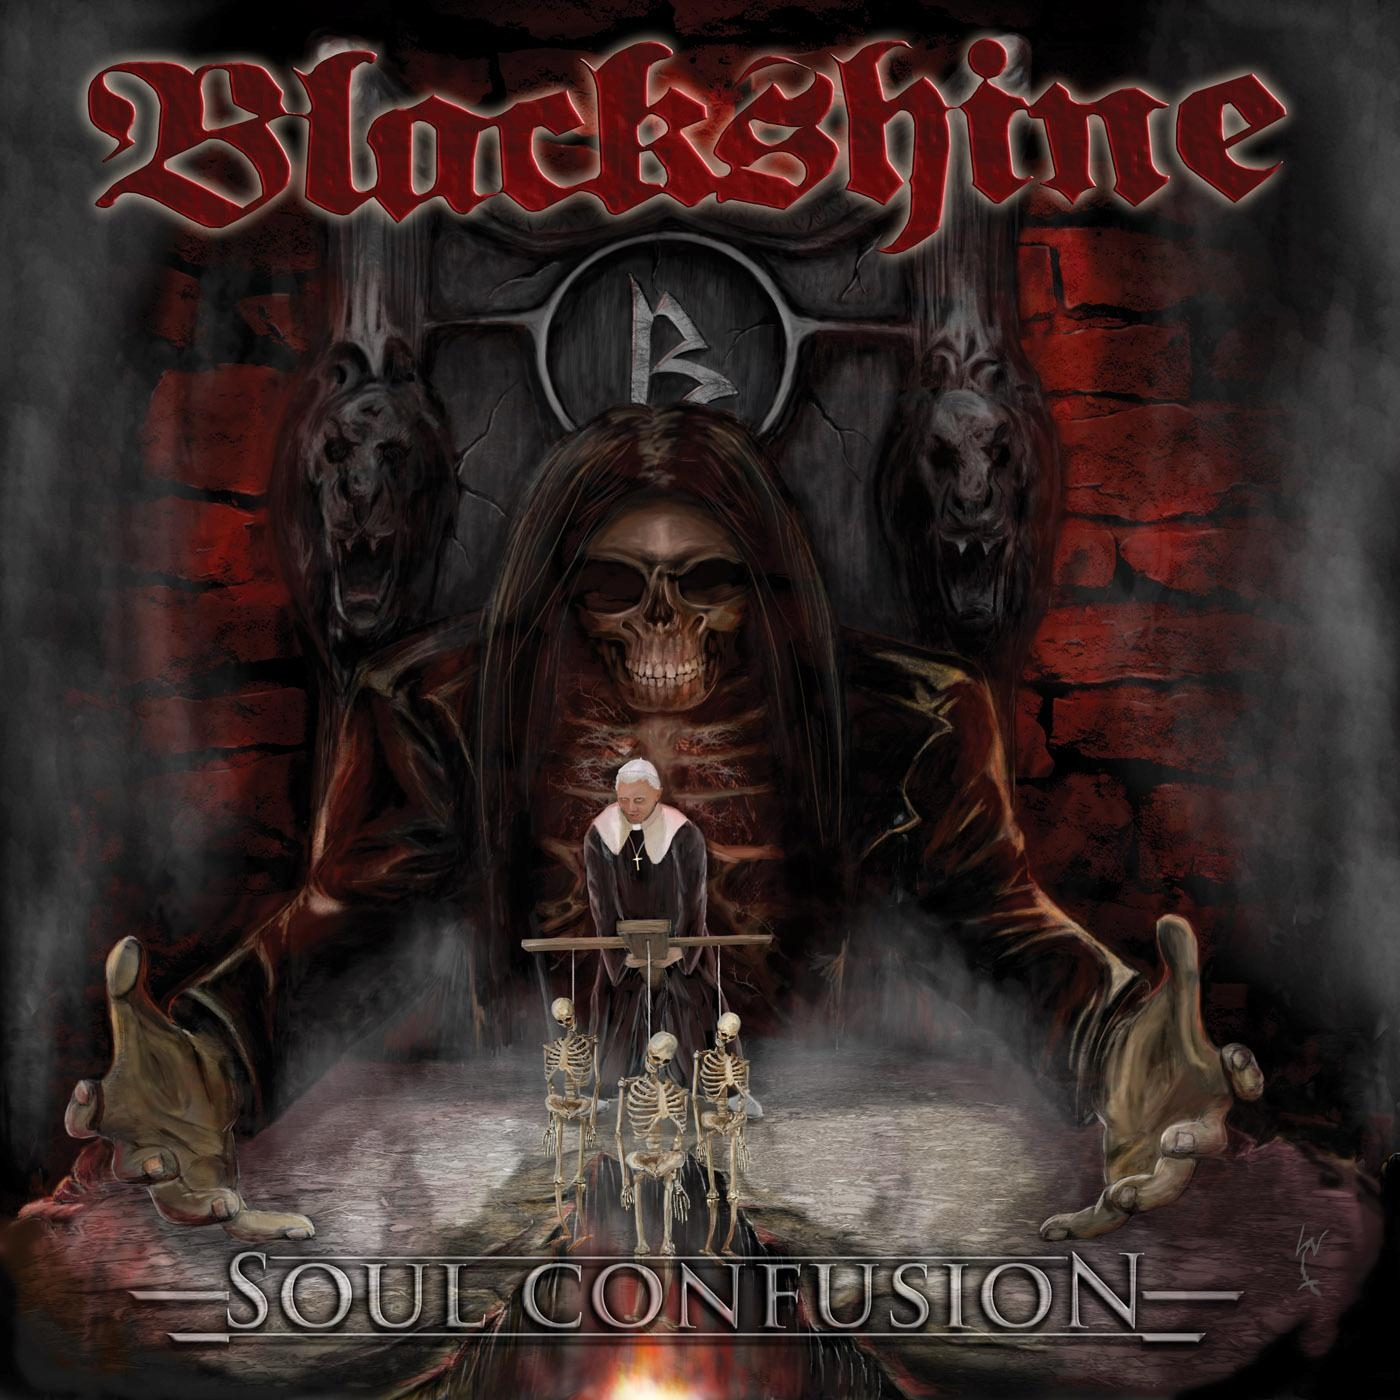 Blackshine – Soul Confusion Review